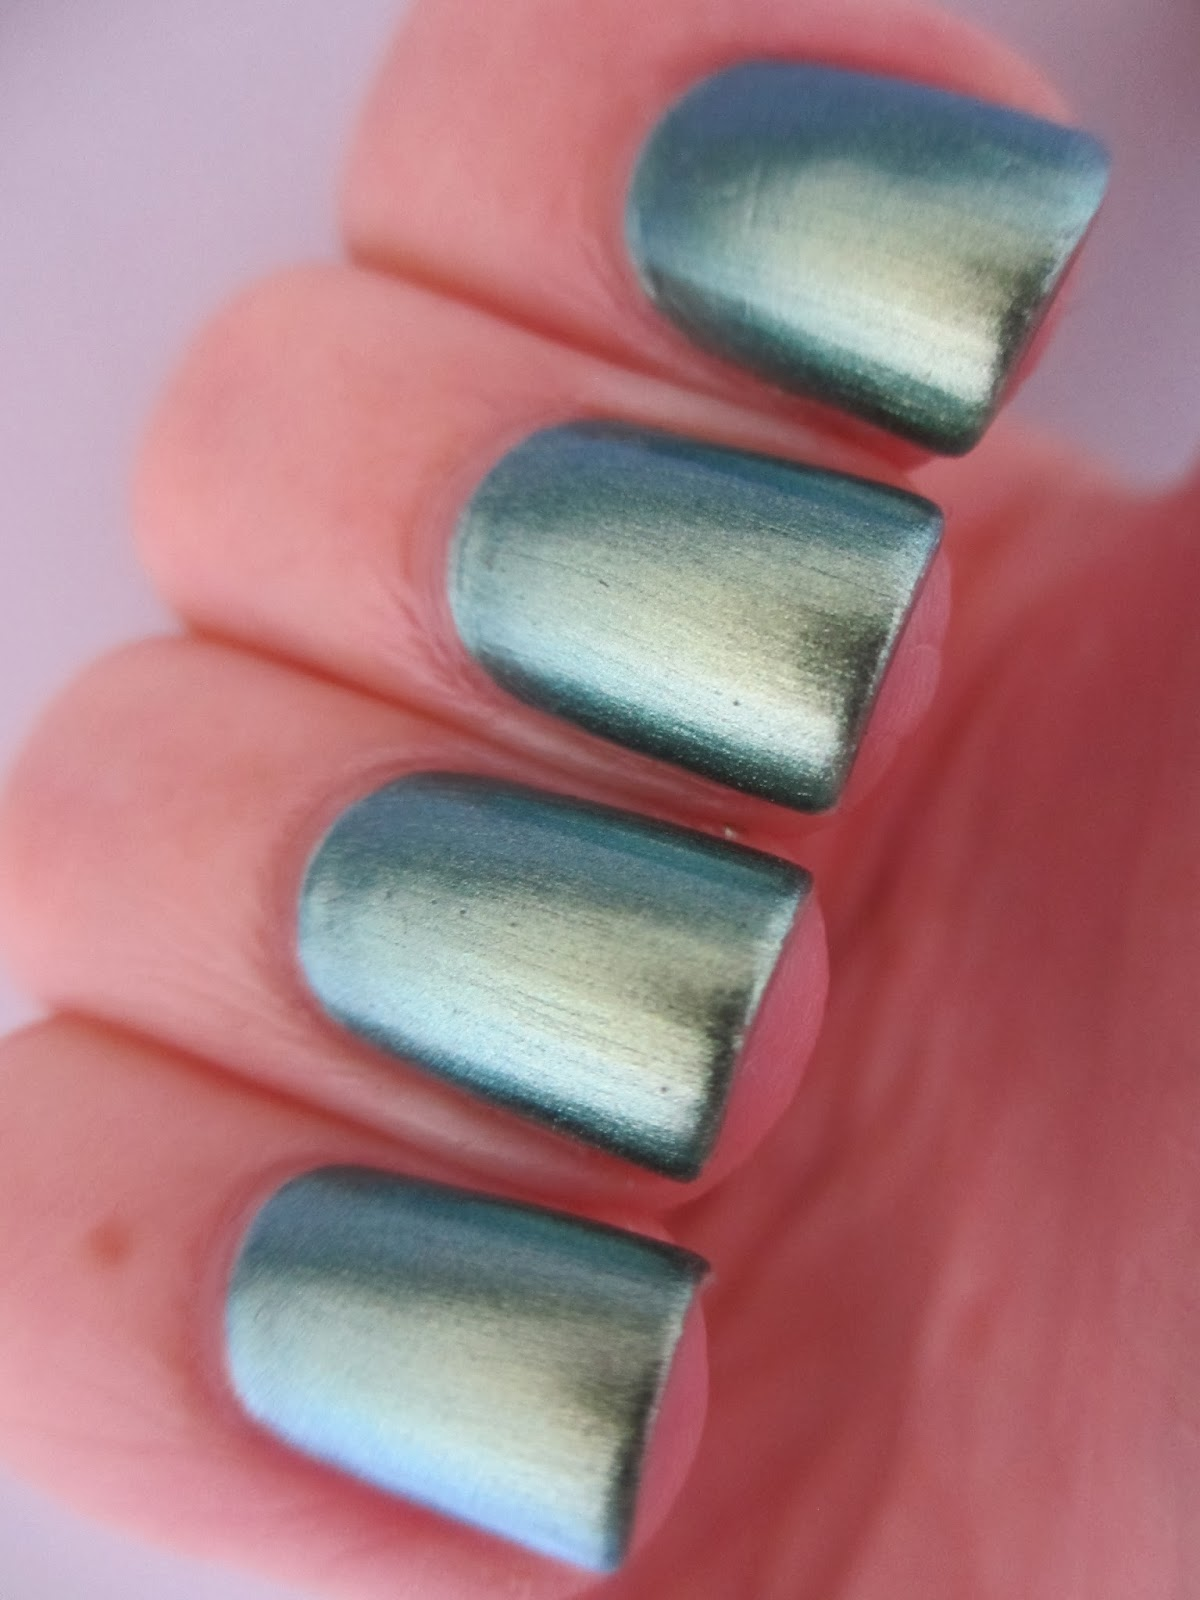 Claire's-Dollar-blue-green-duochrome-swatch-nail-polish